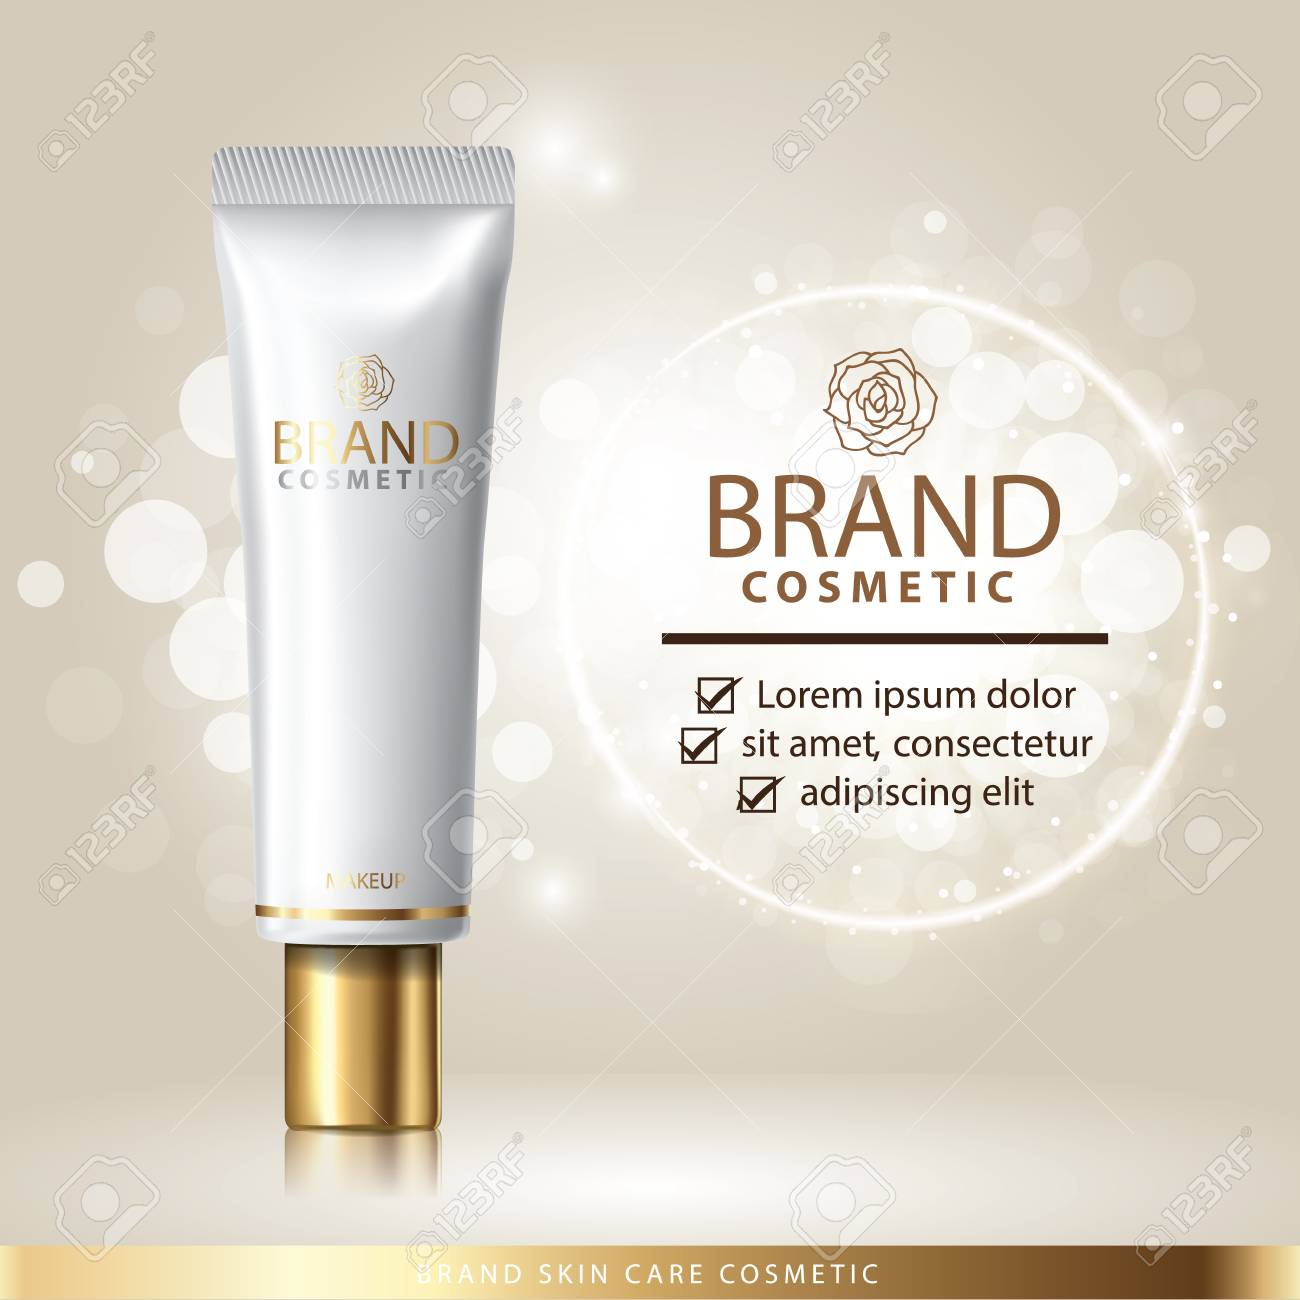 Gold Package Skin Care Cream Banner Vector Illustration Royalty Free Cliparts Vectors And Stock Illustration Image 113127523